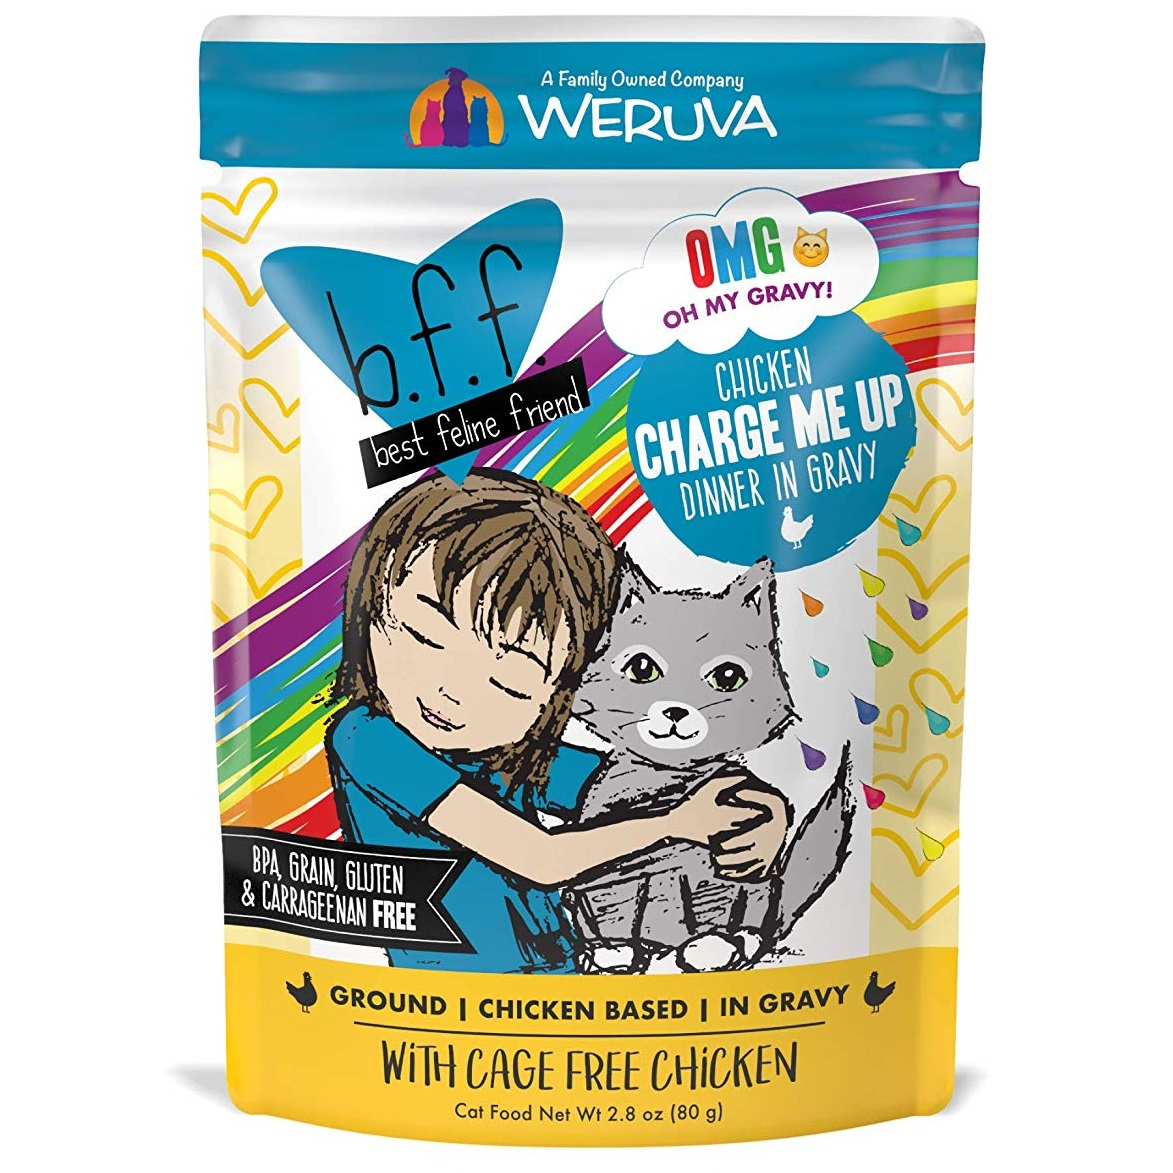 BFF Oh My Gravy! Charge Me Up! Chicken Dinner in Gravy Grain-Free Wet Cat Food, 3-oz pouch Size: 3-oz pouch